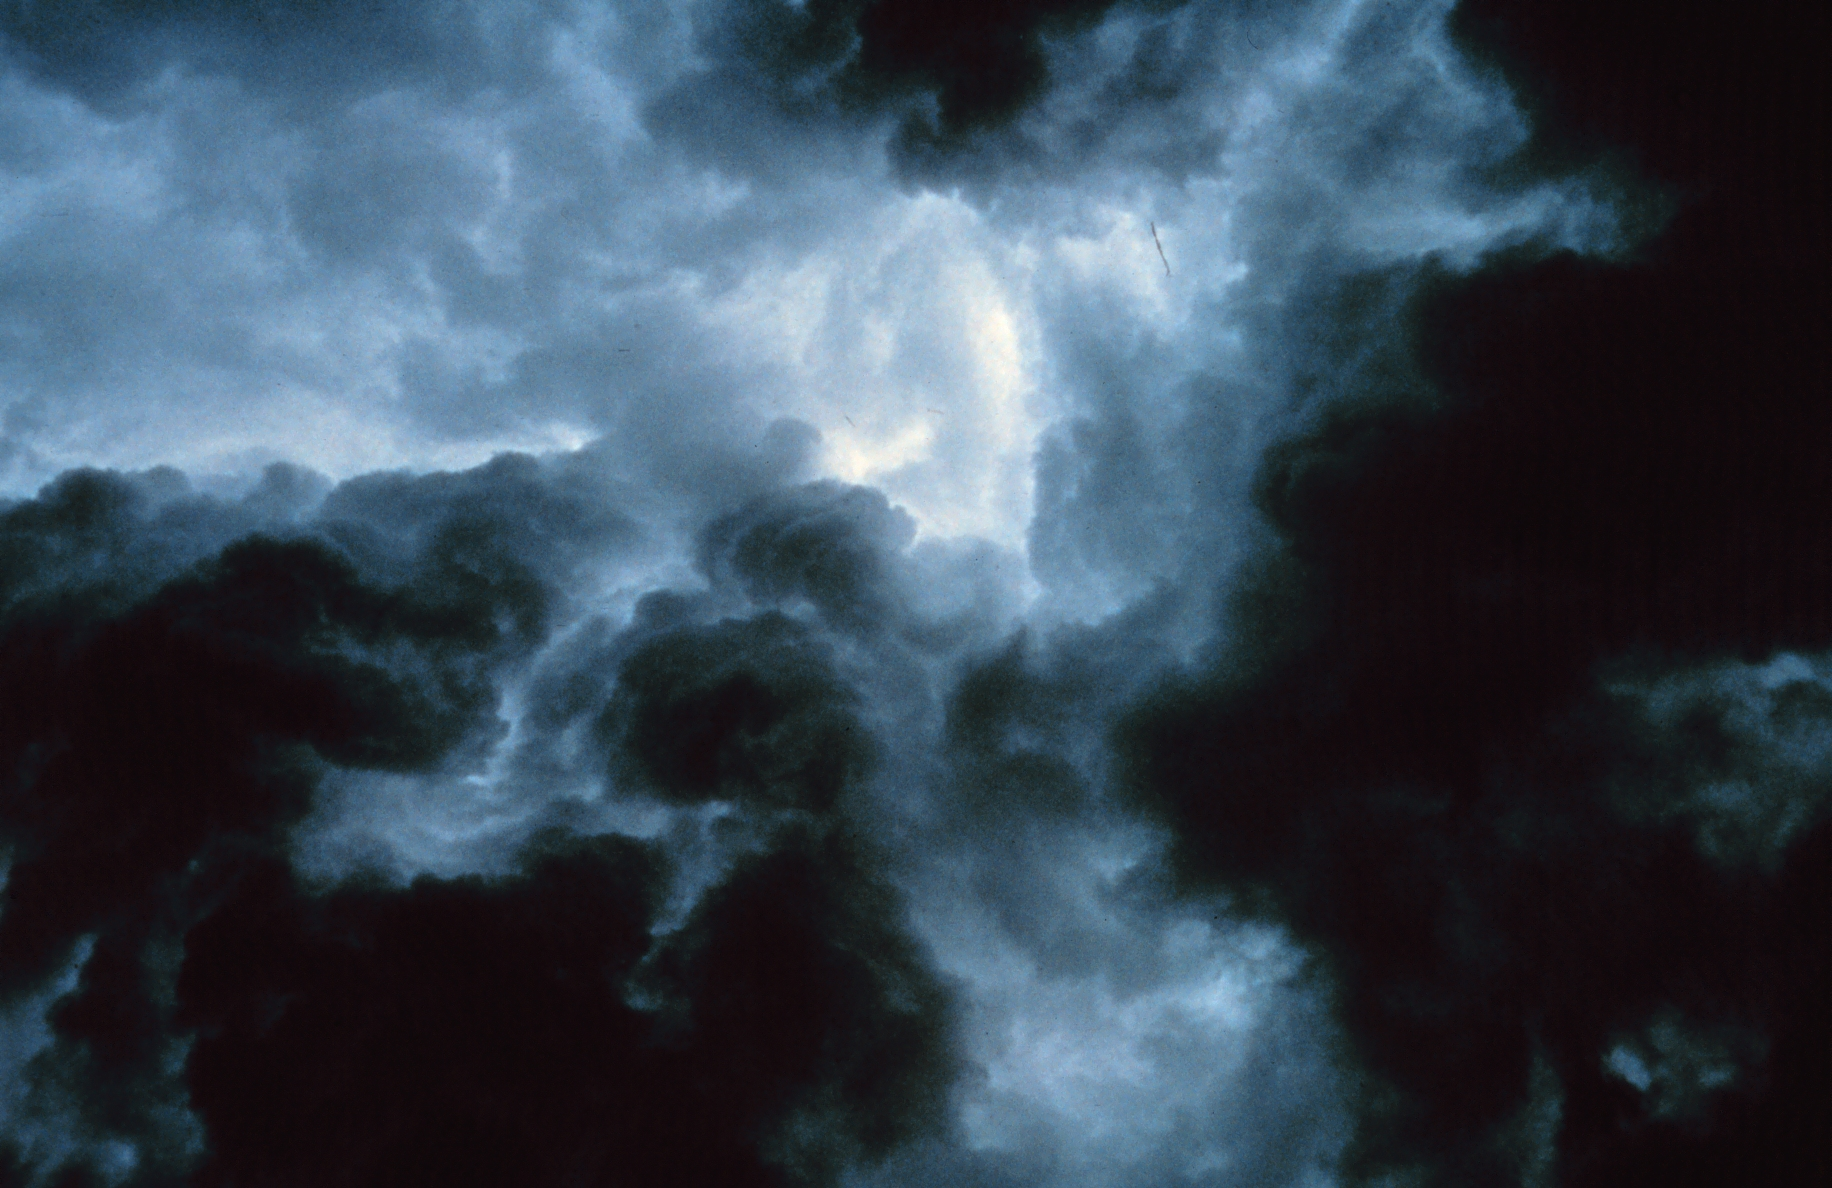 http://upload.wikimedia.org/wikipedia/commons/b/b4/Turbulent_gust_front_-_NOAA.jpg